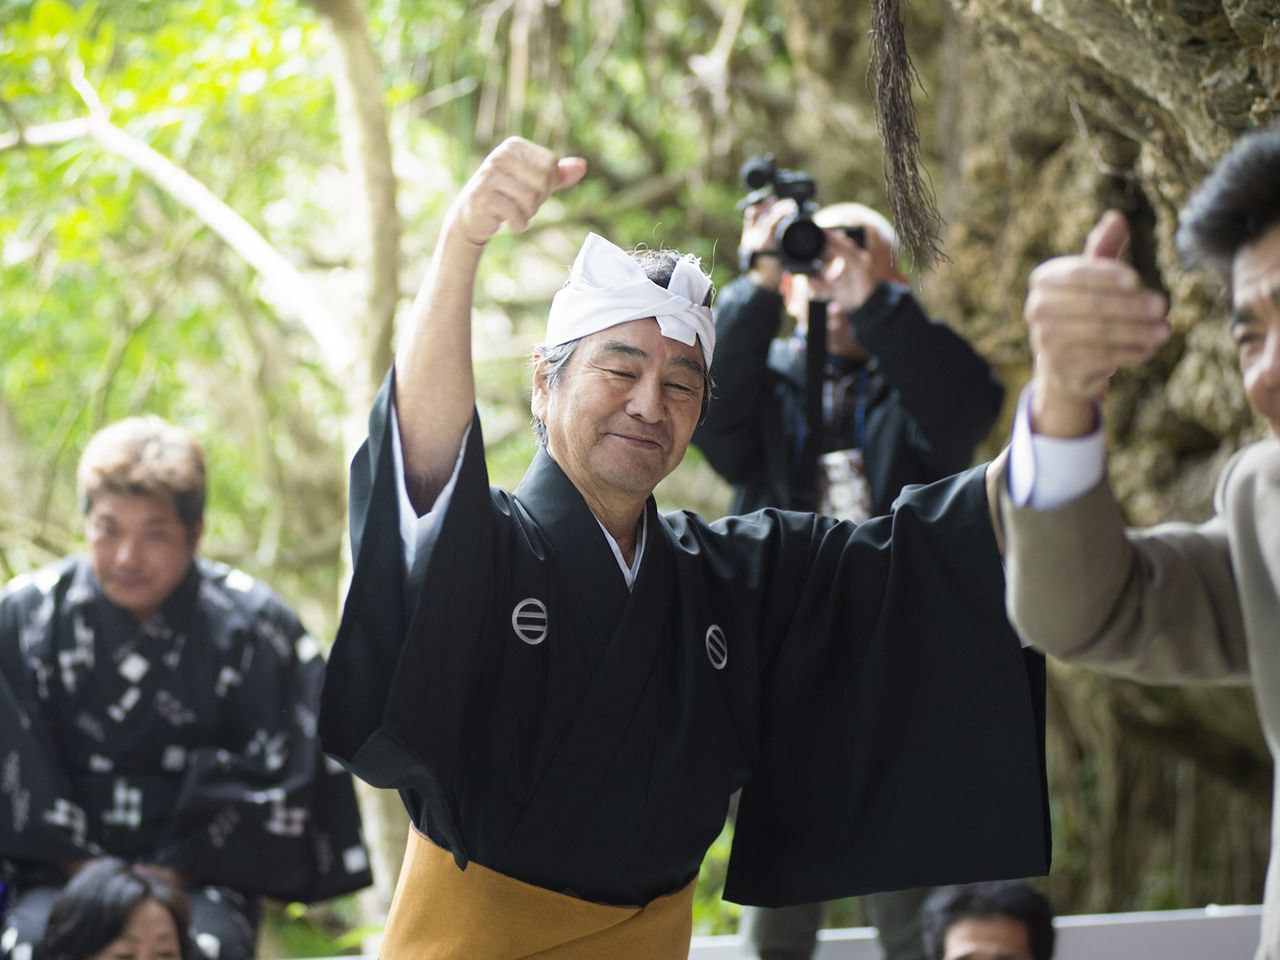 Dancing the <em>kachāshī</em> to <em>sanshin</em> music after offerings have been performed.